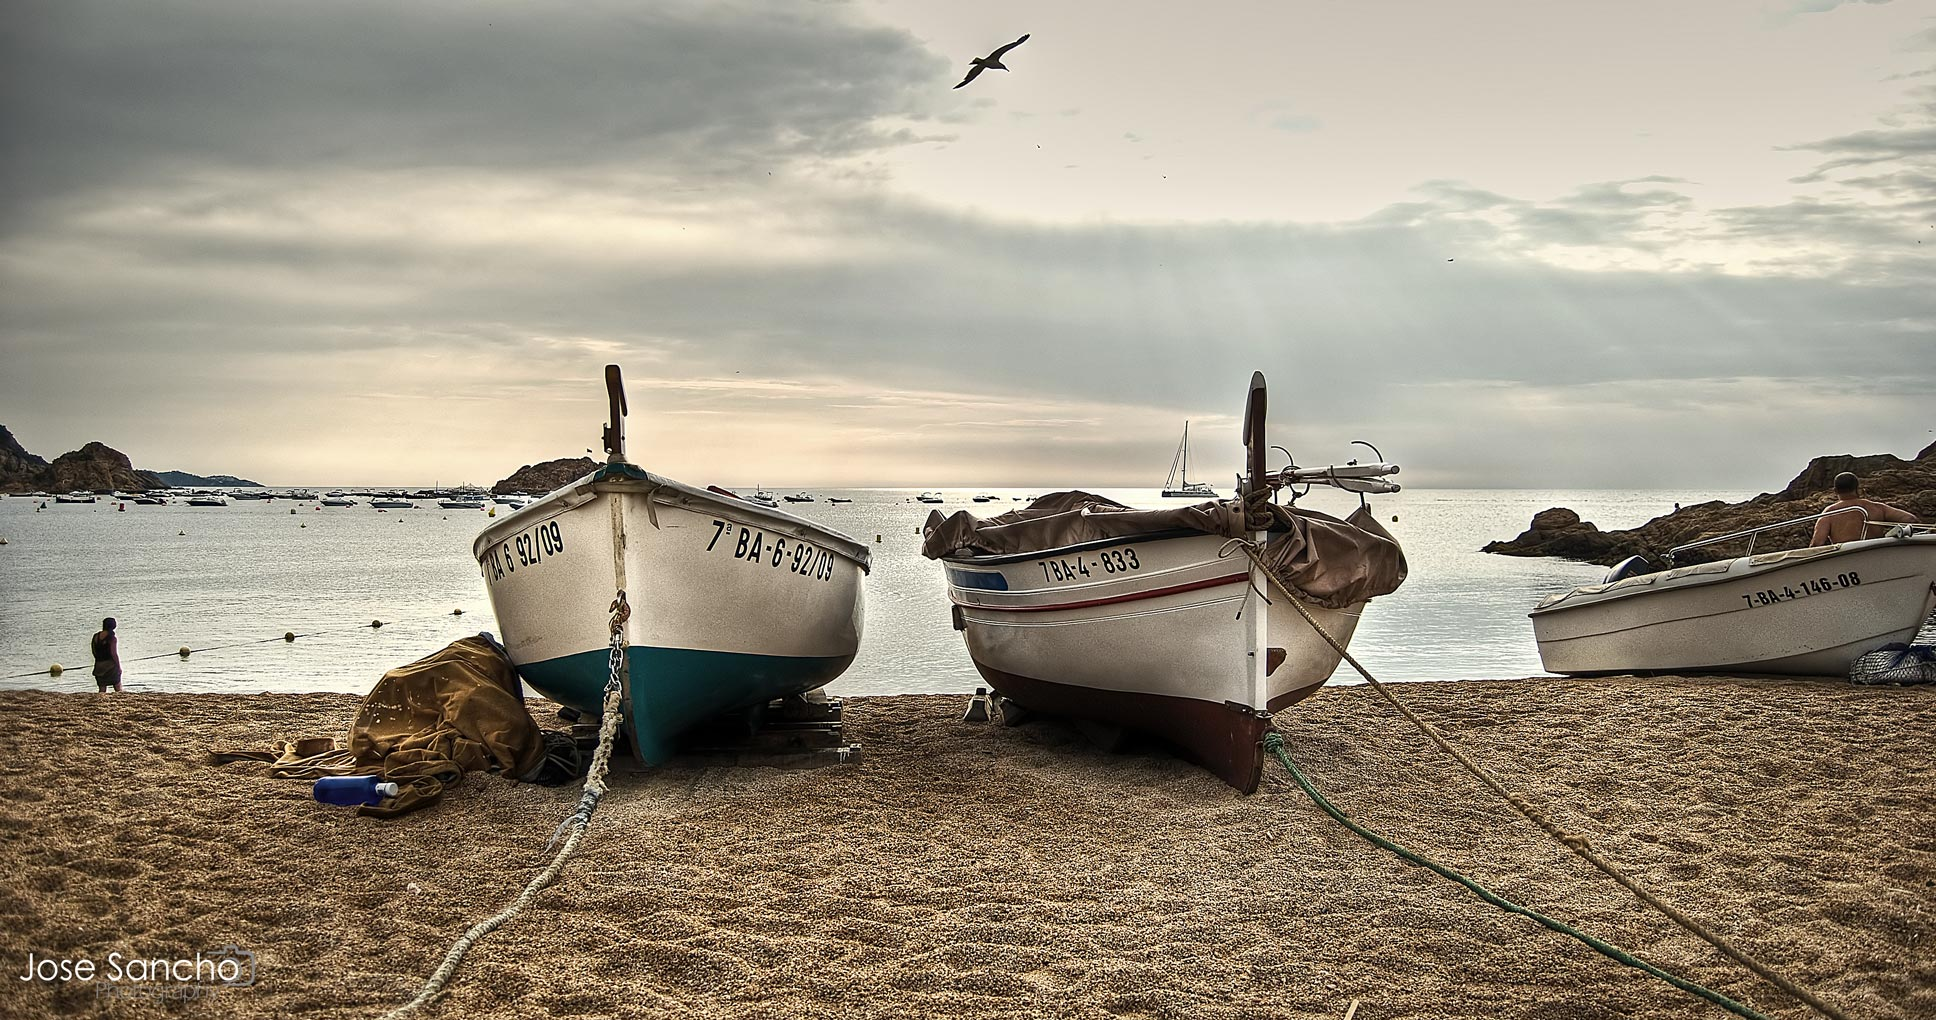 Barcas - Jose Sancho Photography